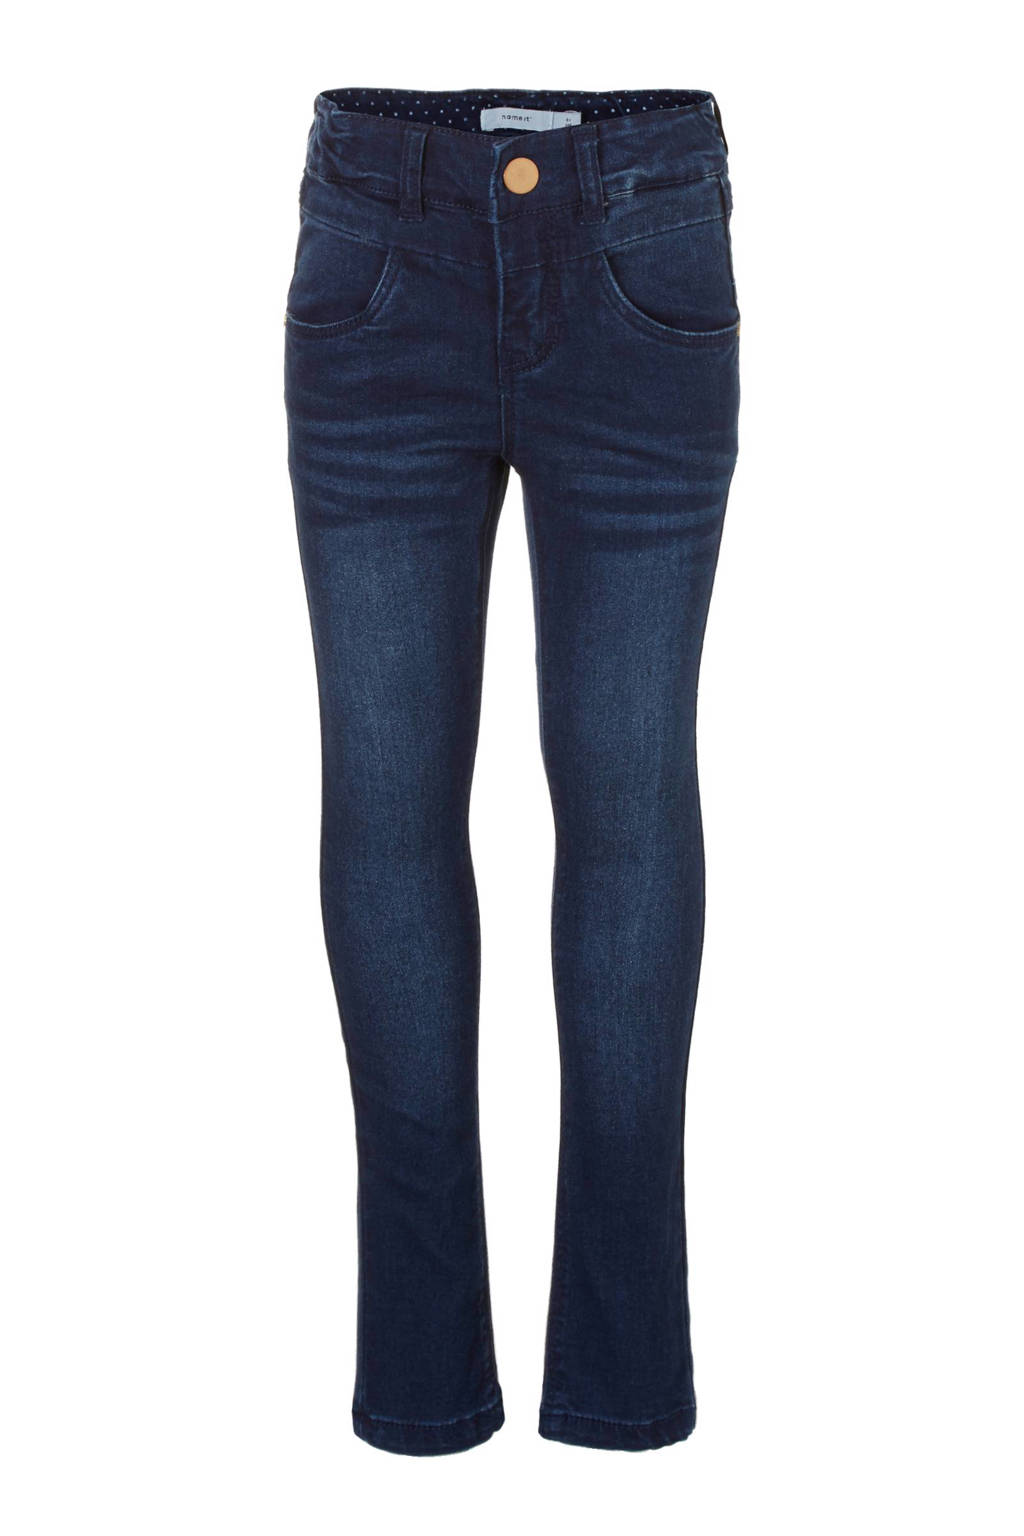 name it KIDS Polly skinny fit jeans, dark denim blue